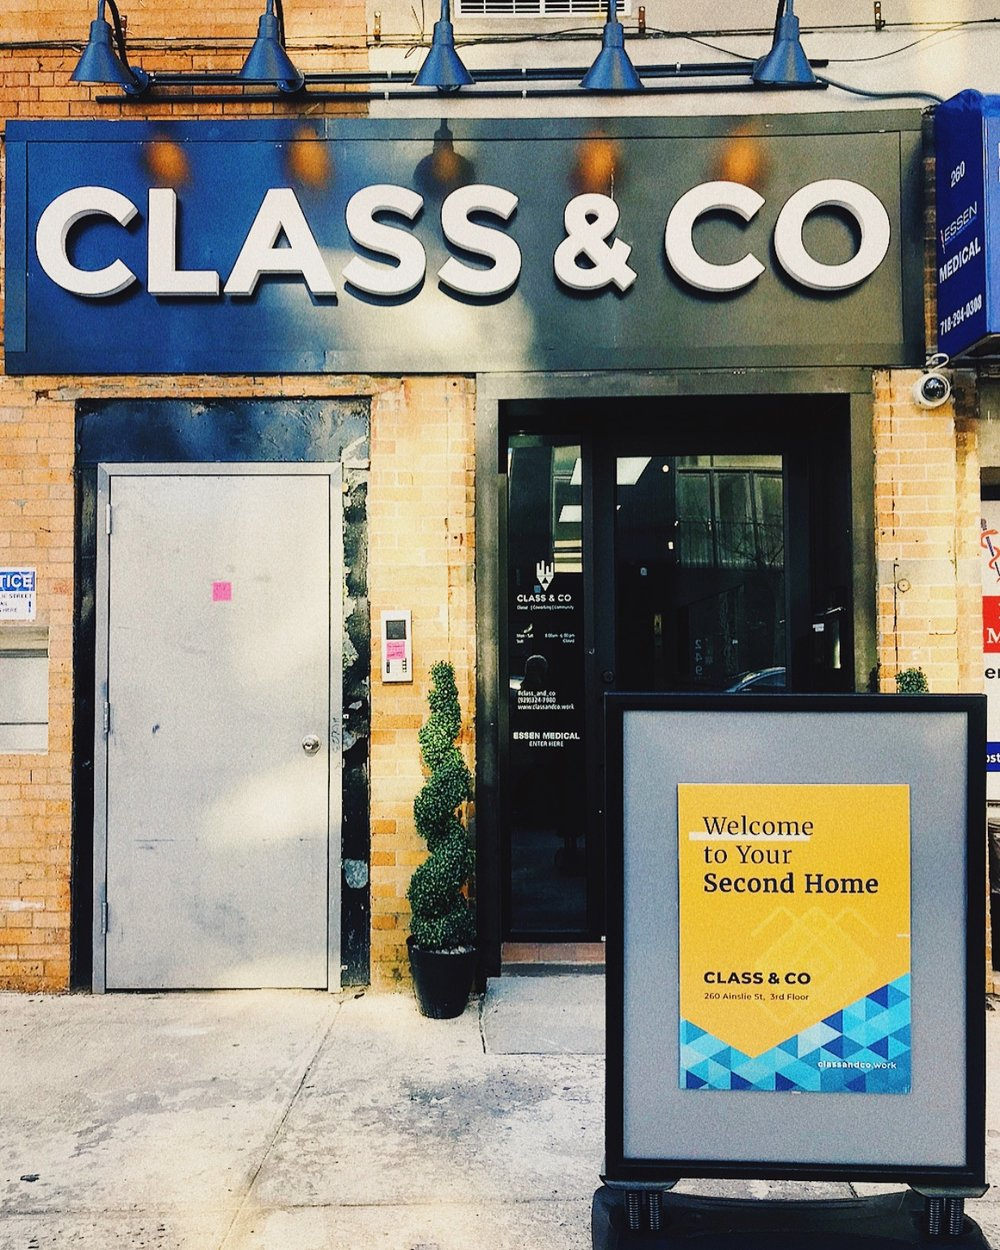 class-&-co-coworking-new-york-city.JPG